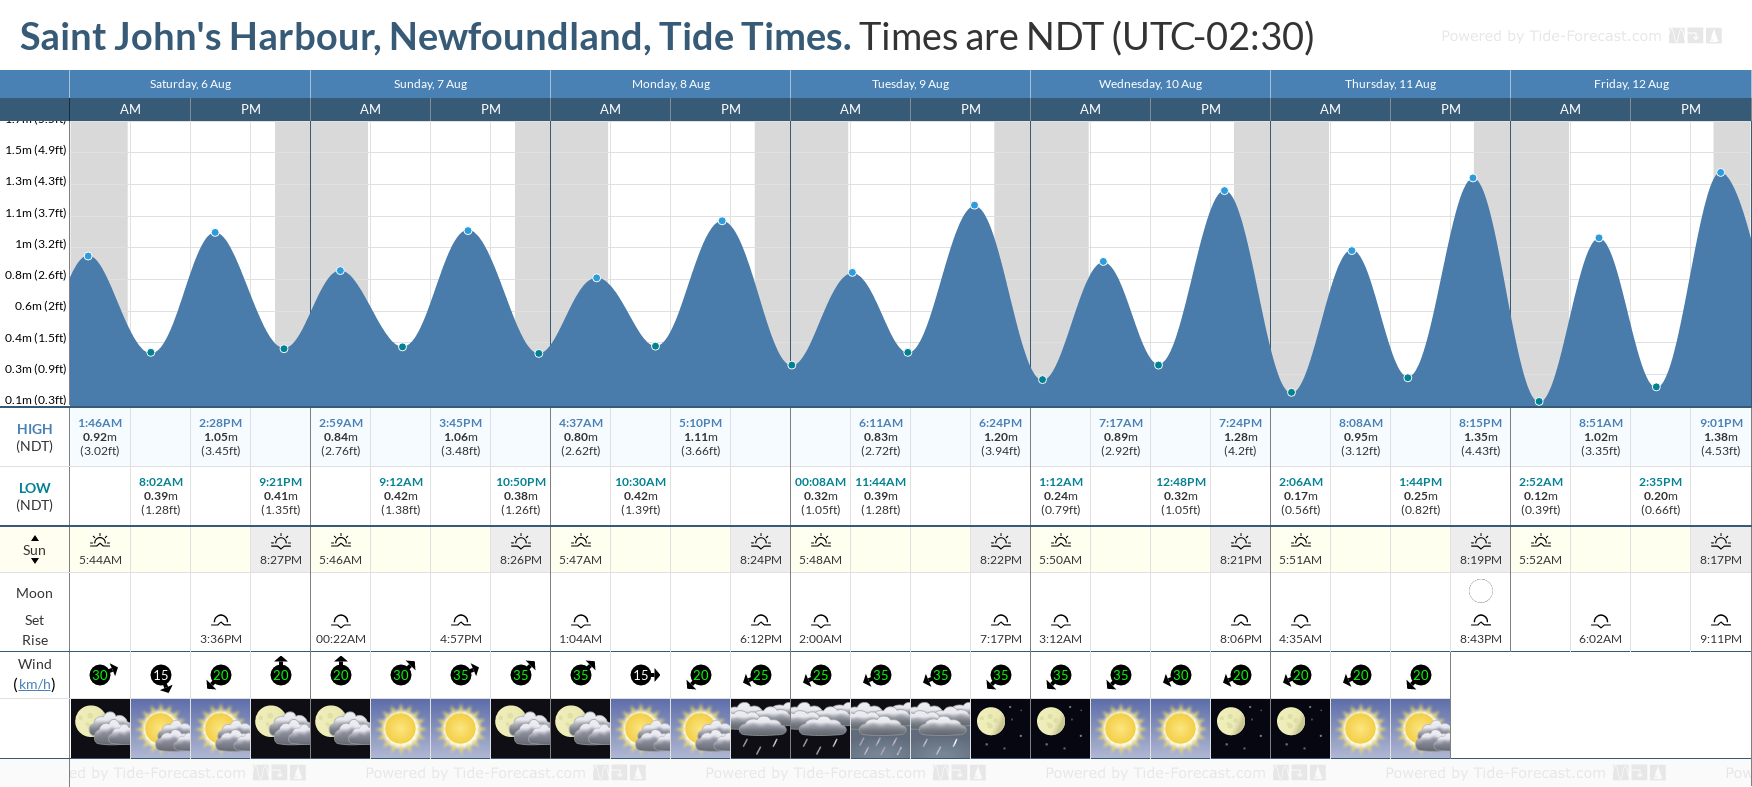 Saint John's Harbour, Newfoundland Tide Chart including high and low tide tide times for the next 7 days